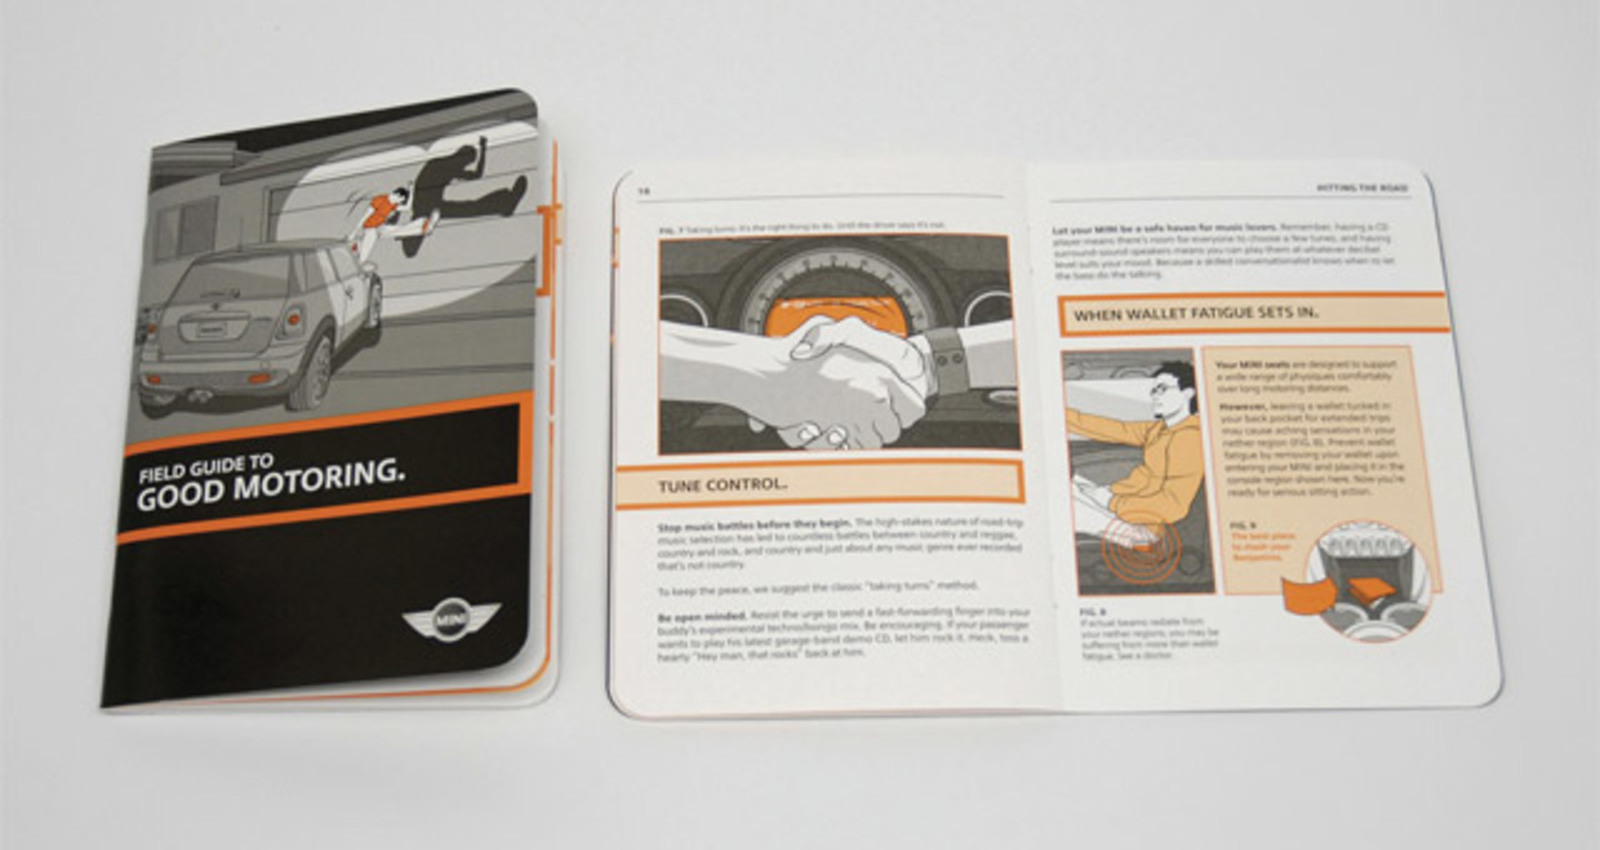 Field Guide to good Motoring